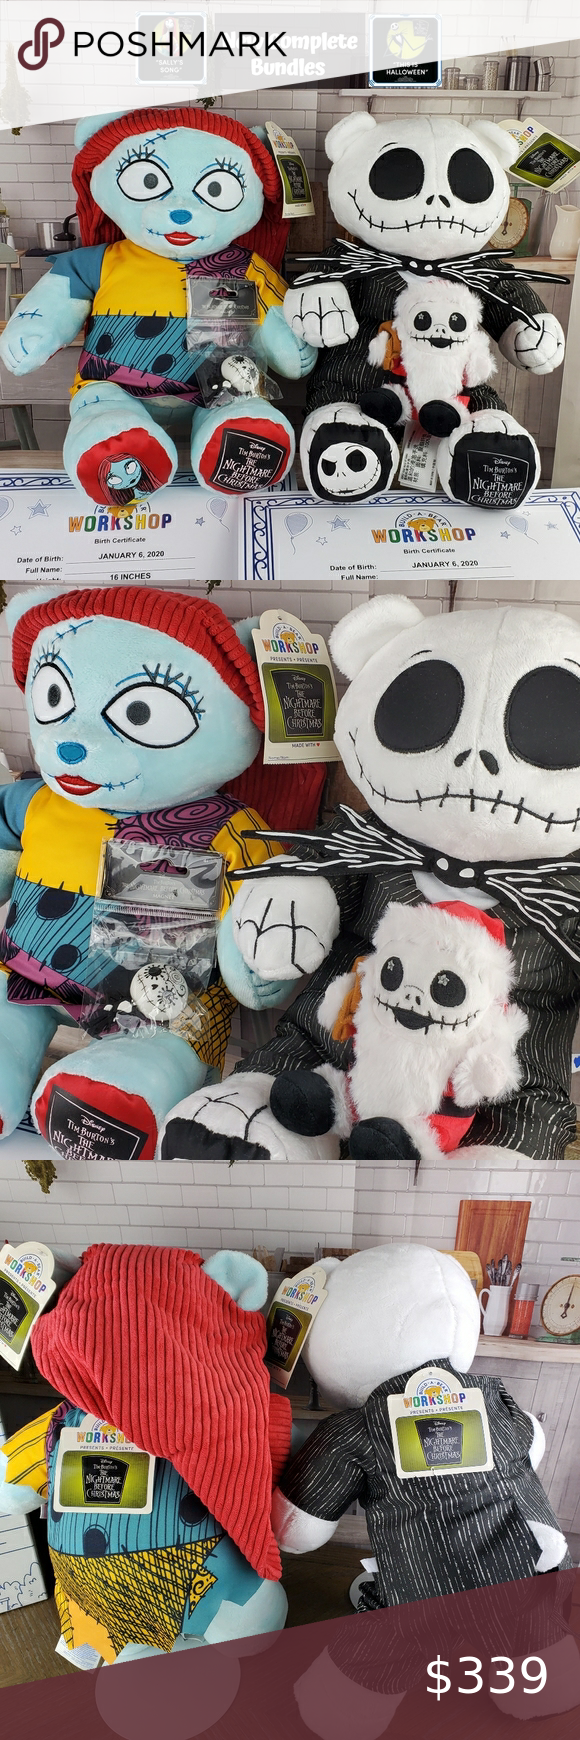 NWT BuildABear TNBC Jack & Sally Song Outfits in 2020